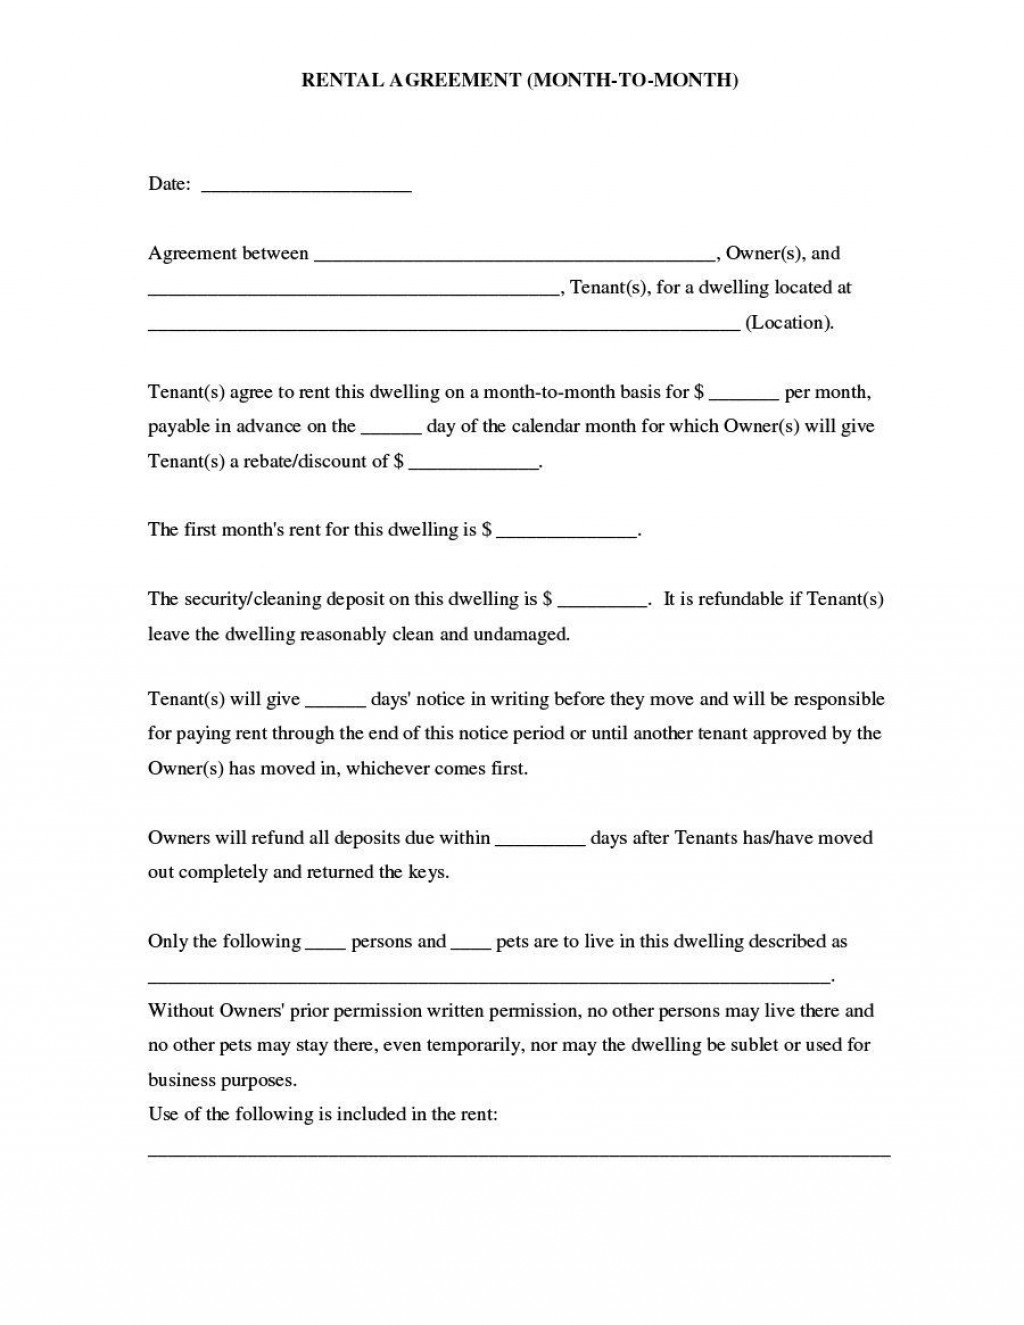 007 Outstanding Housing Rental Agreement Template Free High Resolution Large